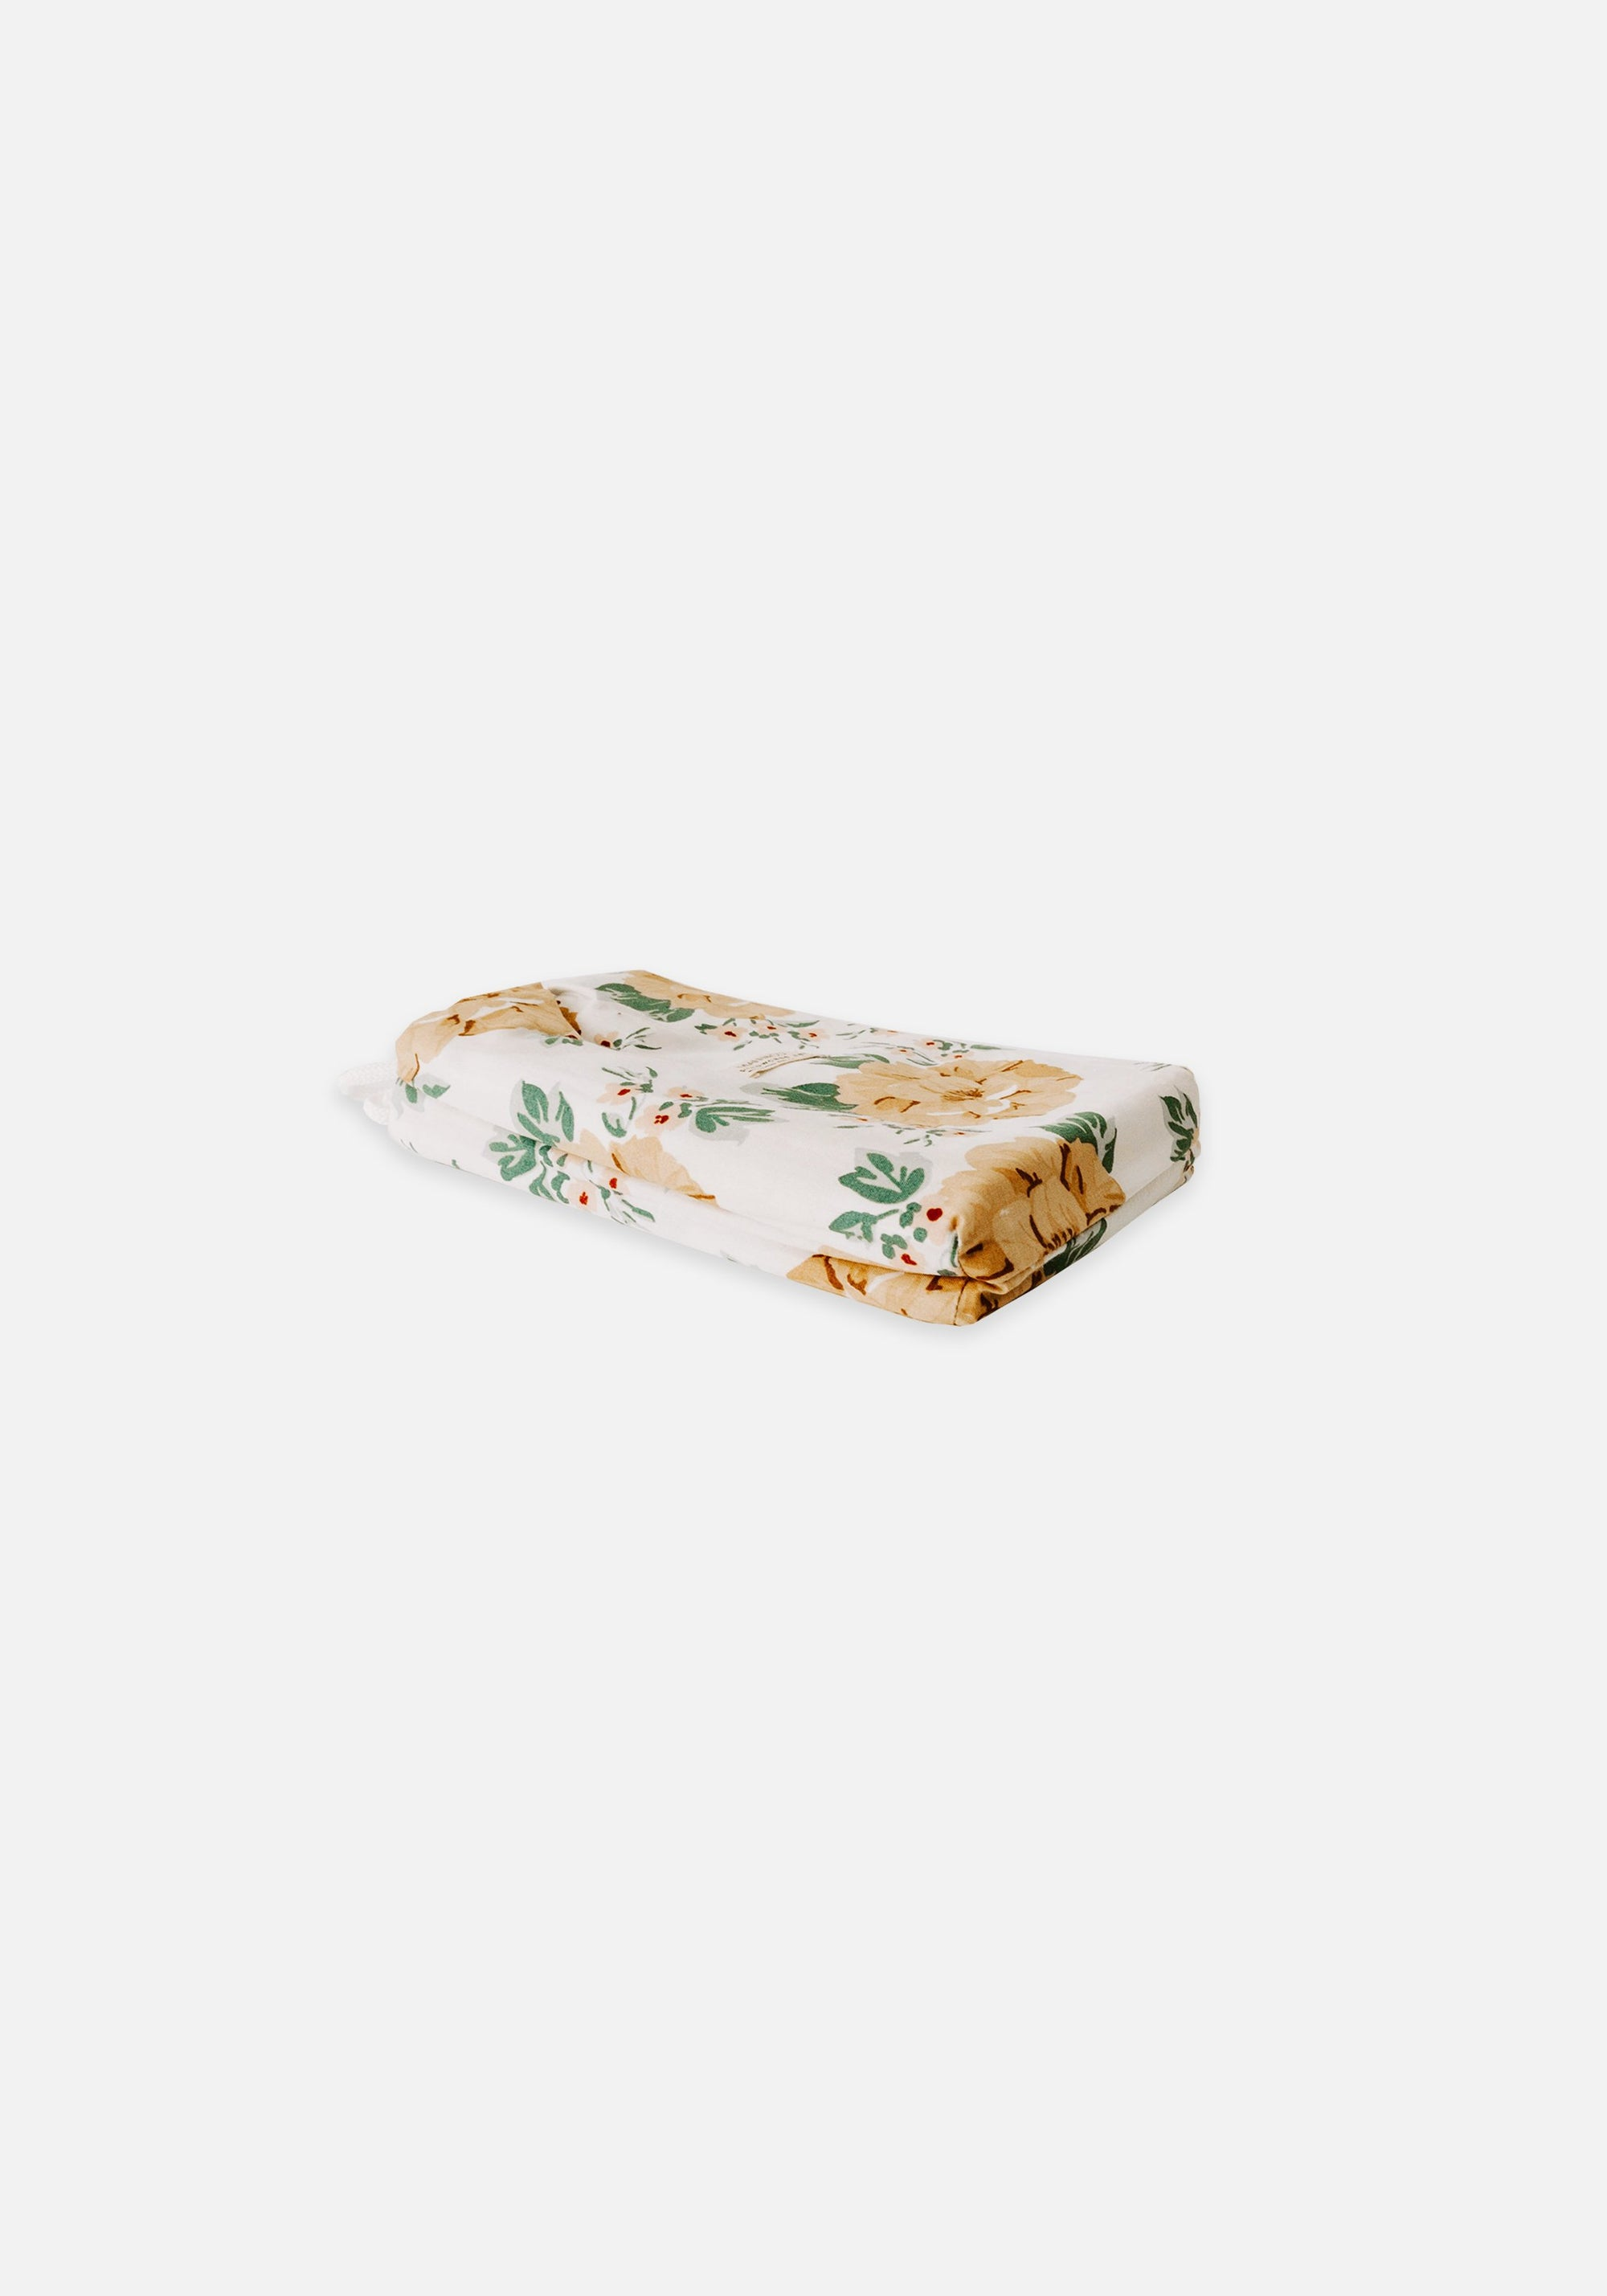 Miann & Co - Pillowcase Set - Mustard Floral